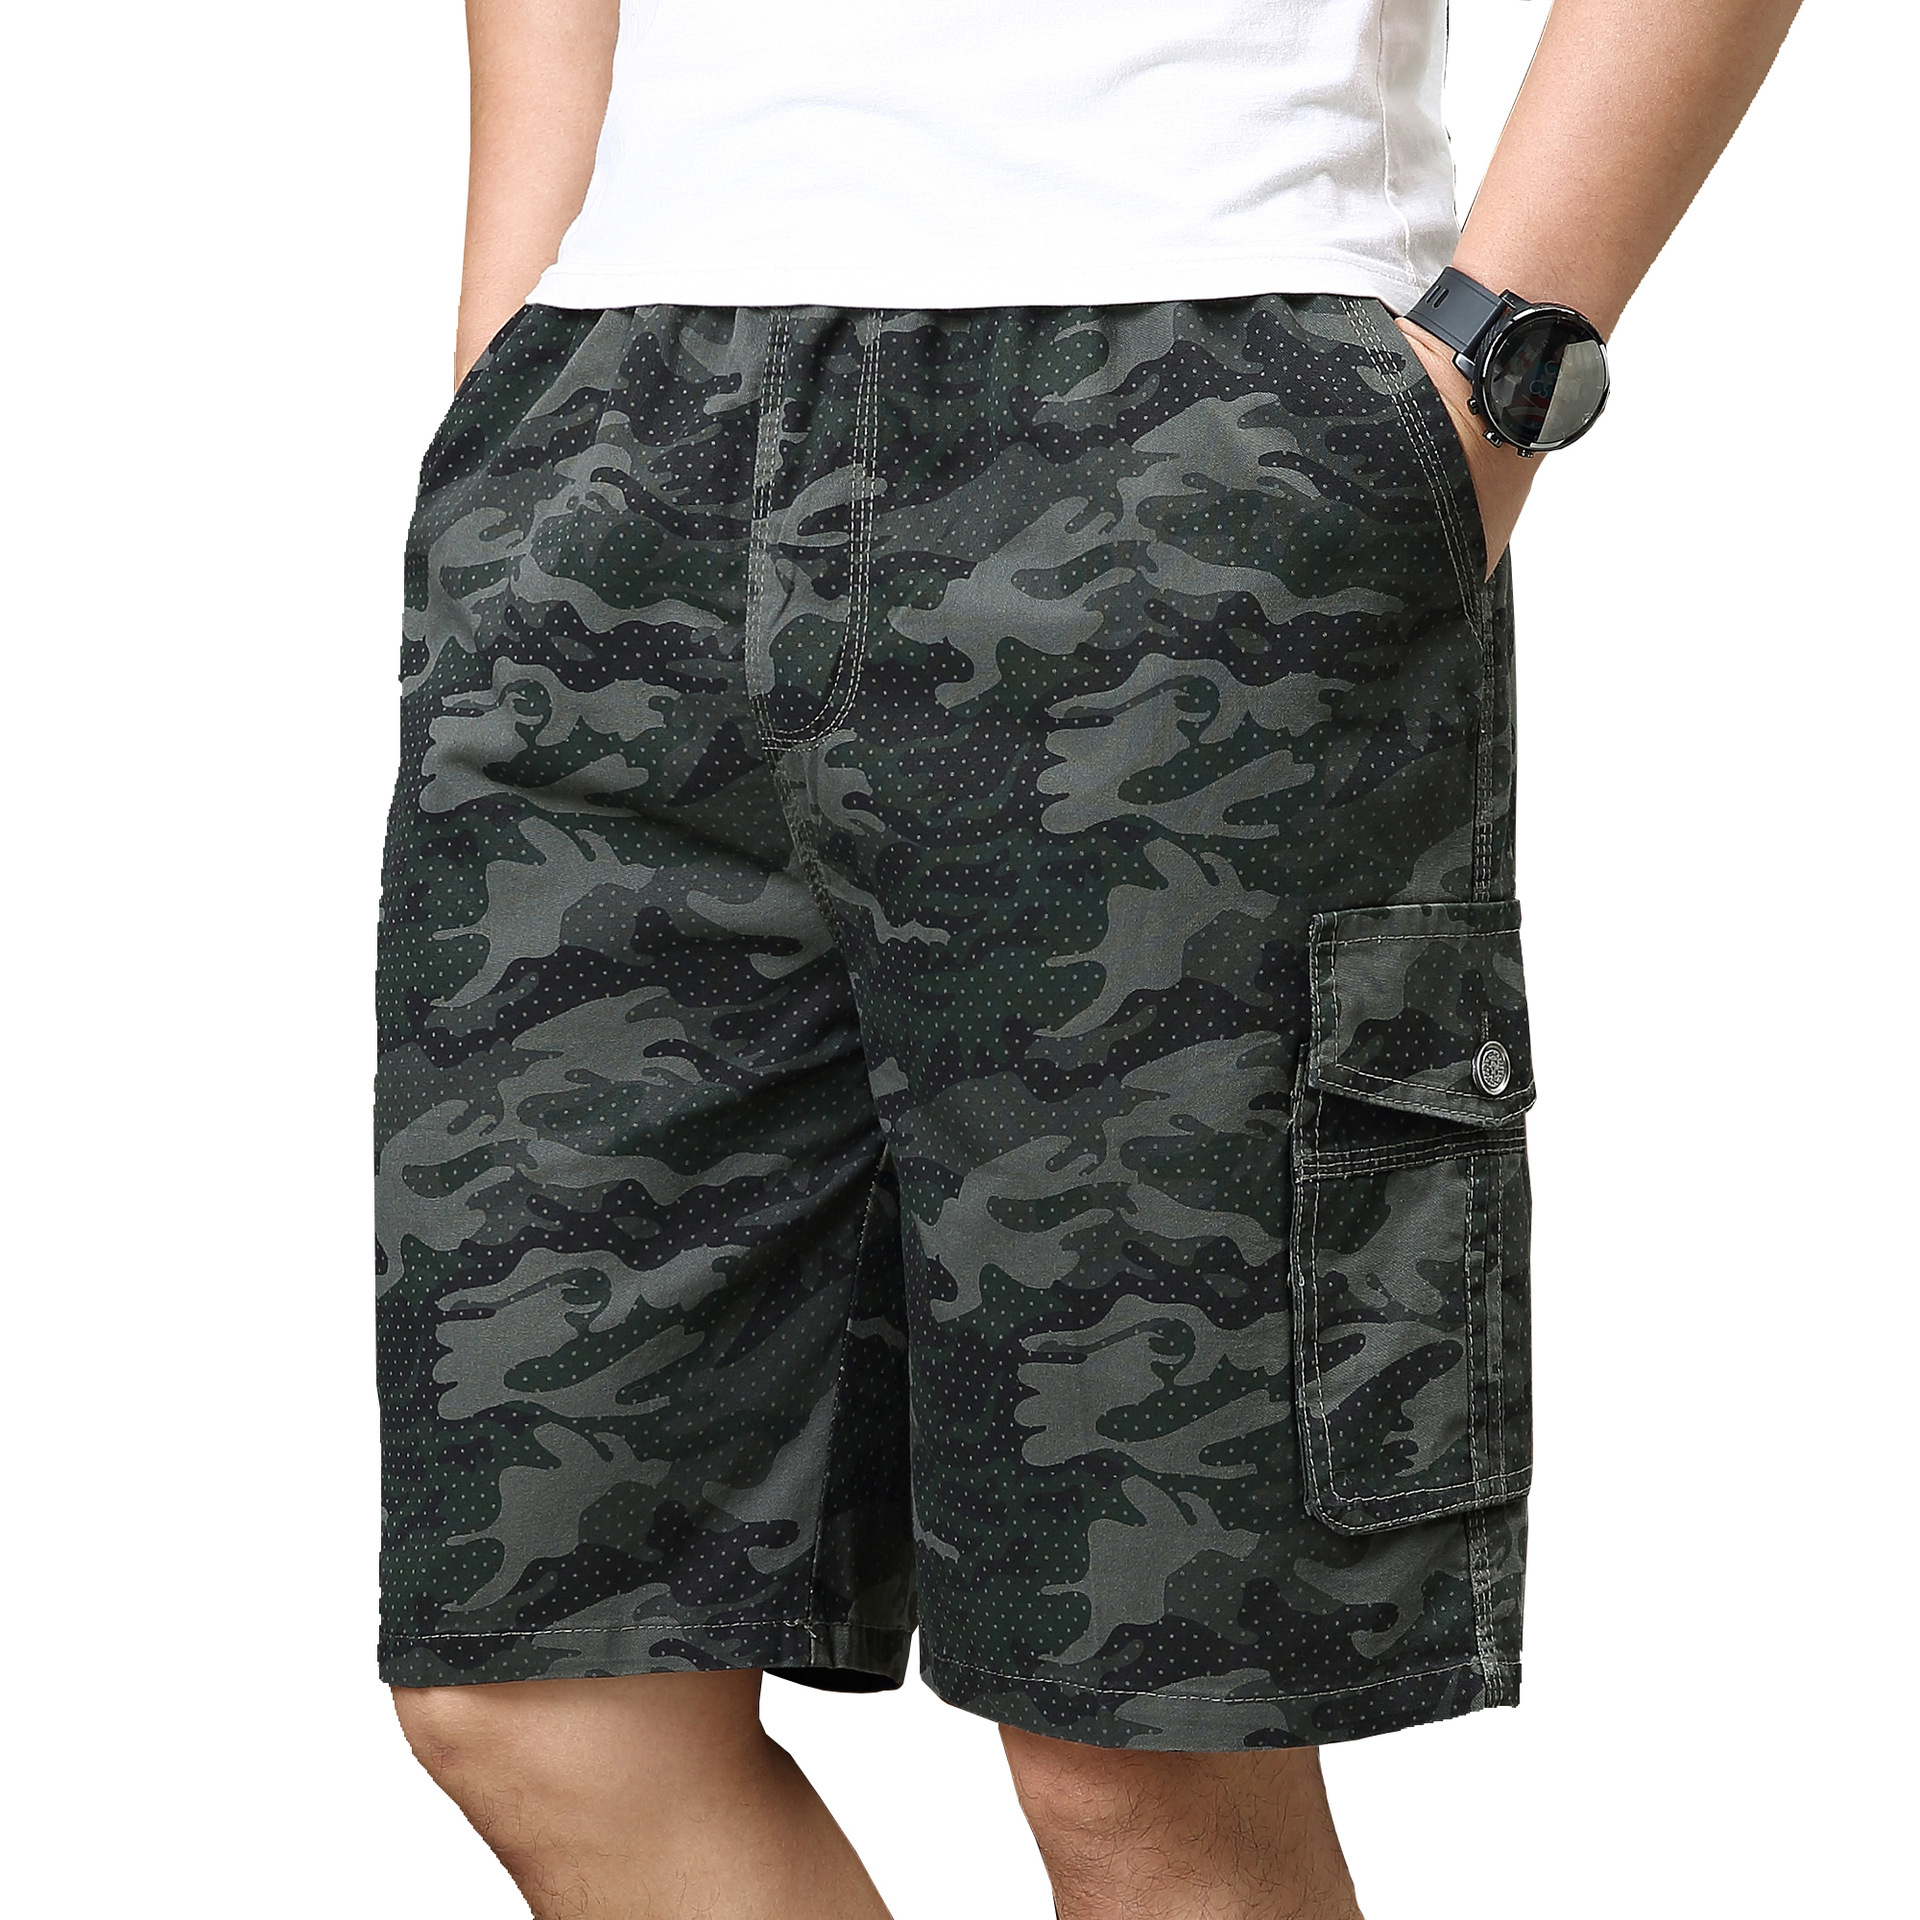 Men's New Fashion Summer Large Size Camouflage Pure Cotton Shorts For Middle-aged And Old People Casual Sport Jogging Shorts